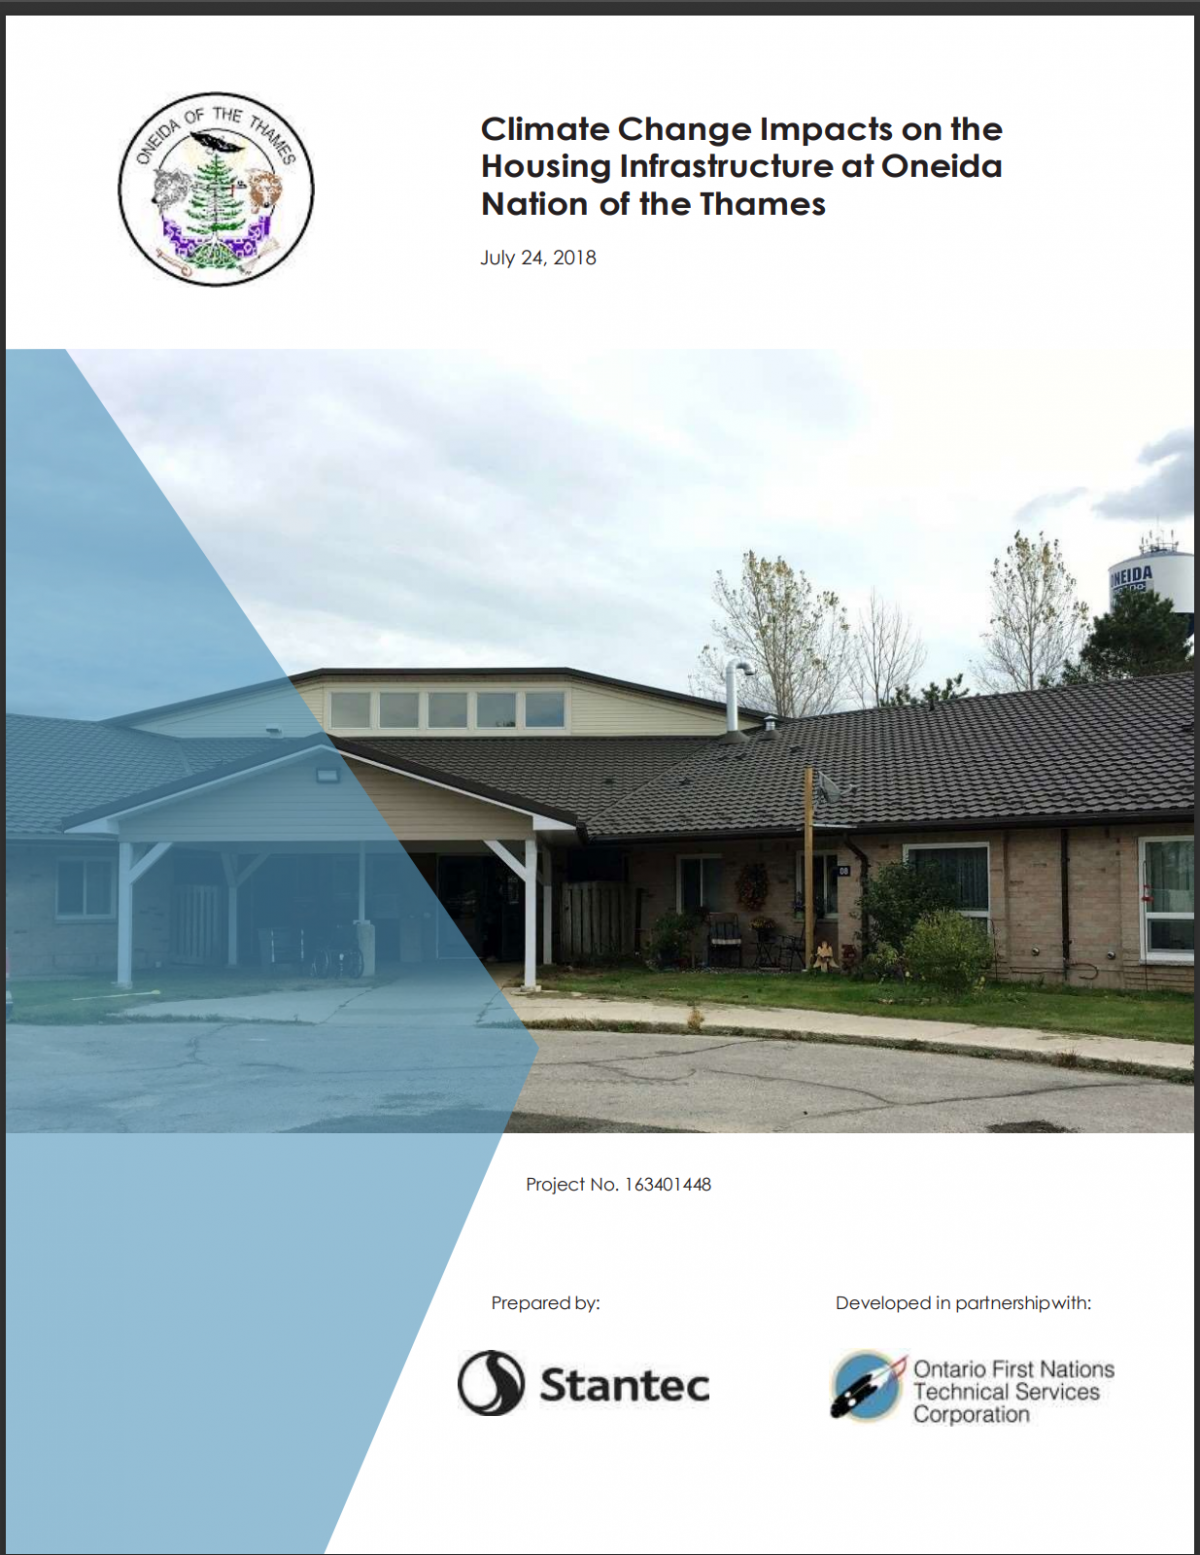 CLIMATE CHANGE IMPACTS ON THE HOUSING INFRASTRUCTURE AT ONEIDA NATION OF THE THAMES